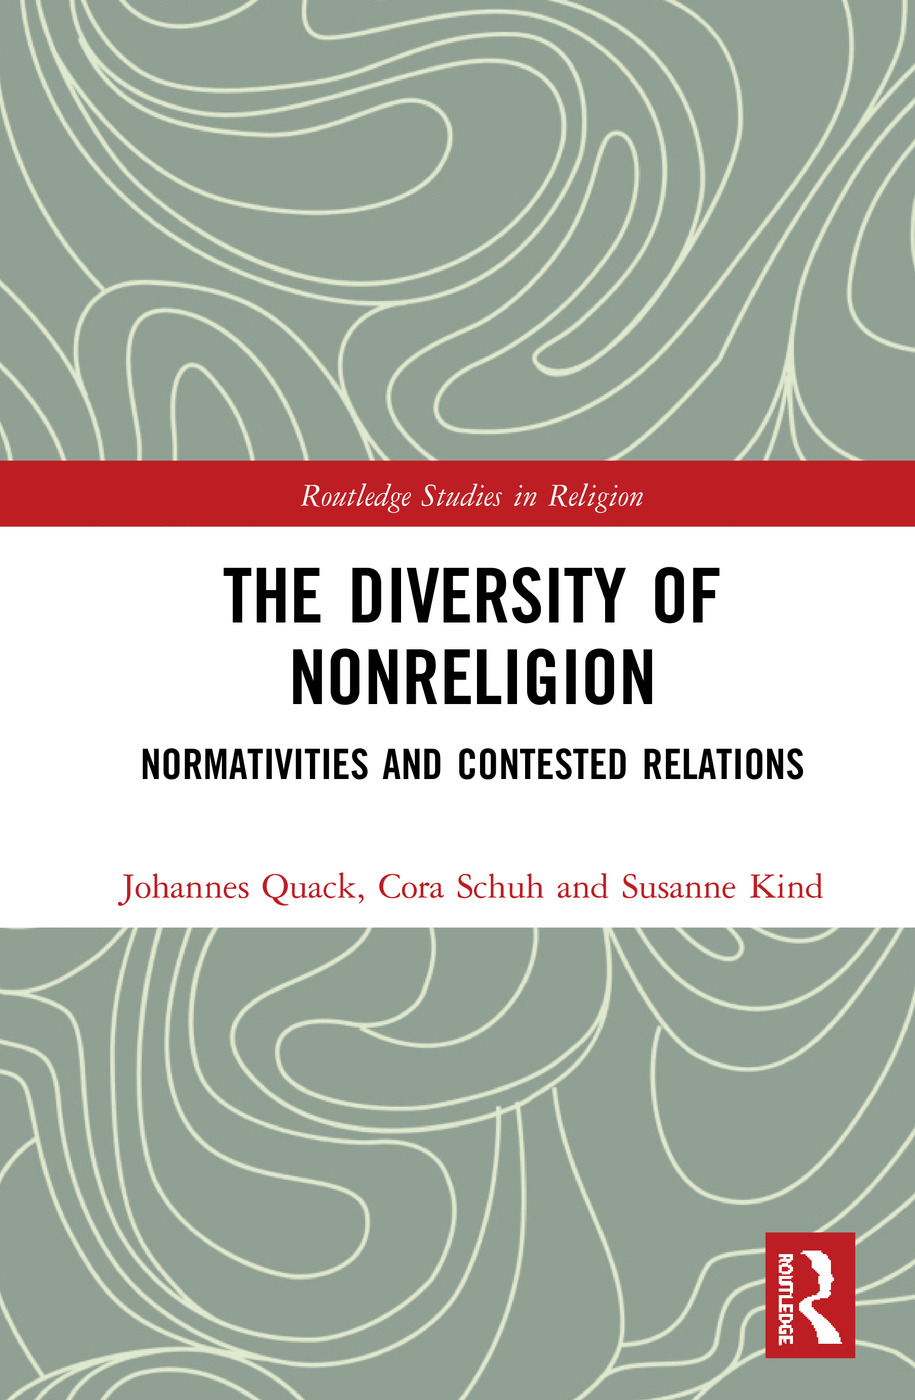 The Diversity of Nonreligion: Normativities and Contested Relations book cover